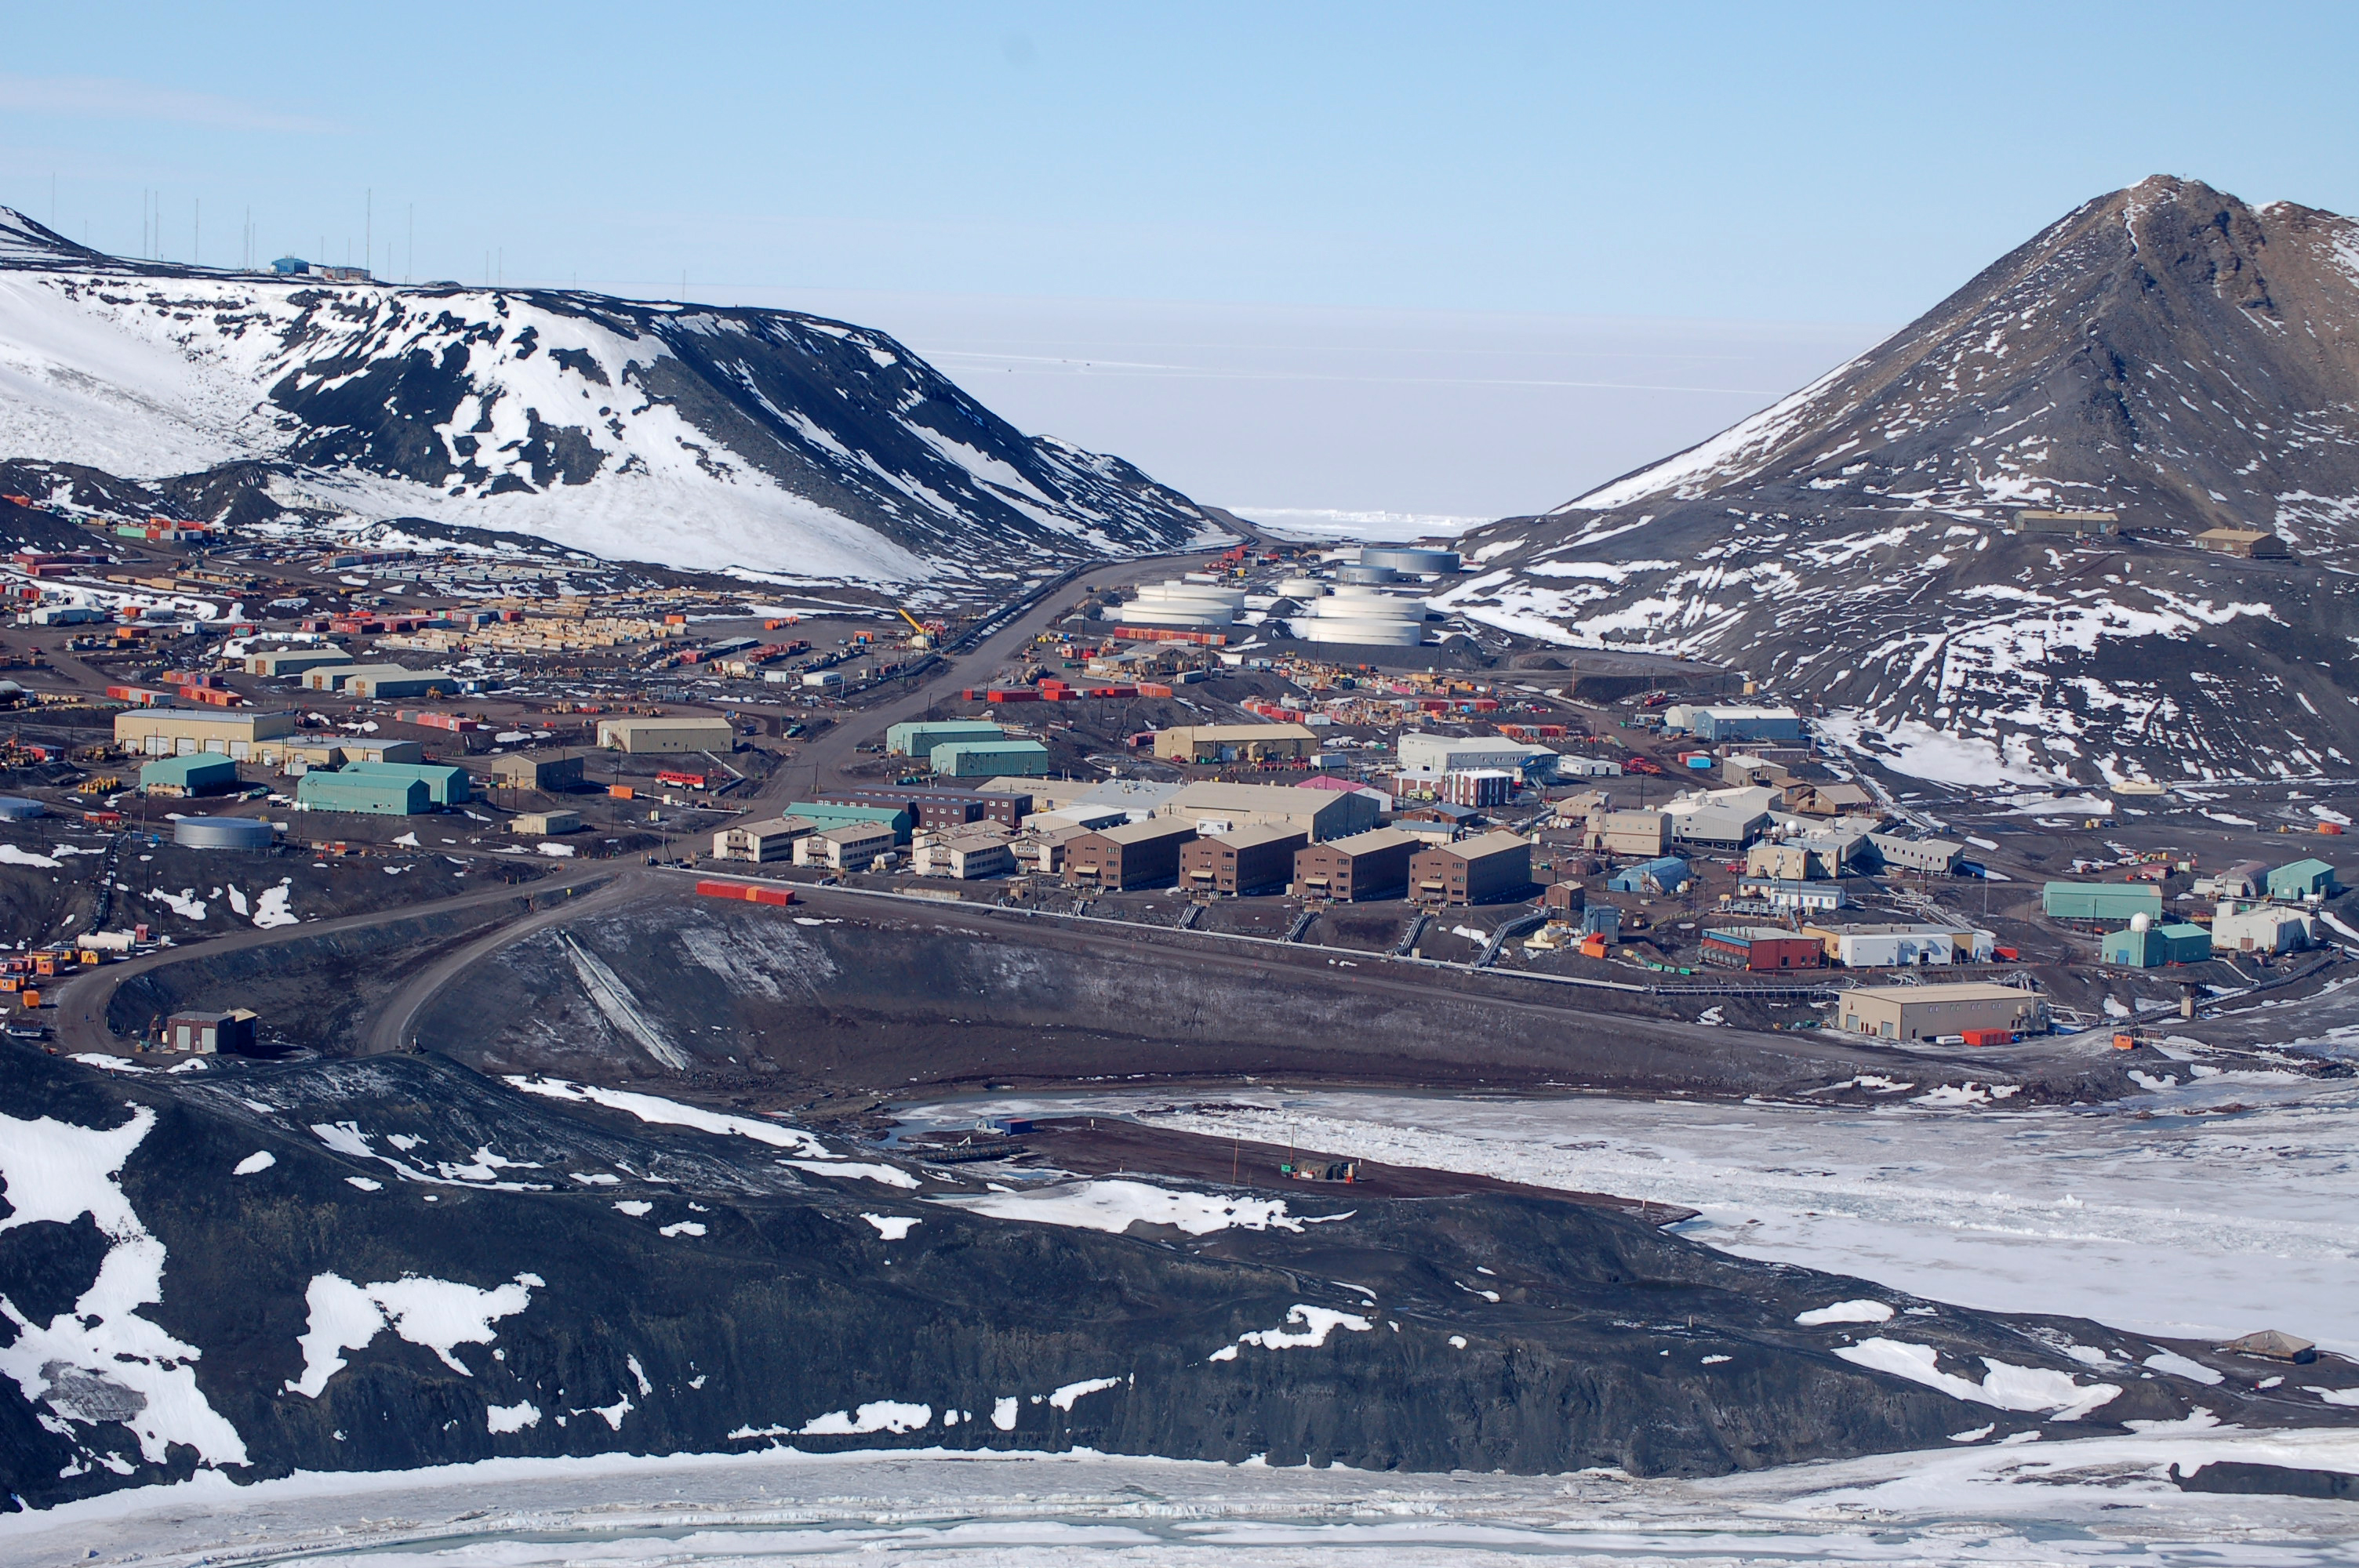 mcmurdo station gay personals Antarctica's best 100% free gay dating site want to meet single gay men in antarctica, enderby land mingle2's gay antarctica personals are the free and easy way to find other antarctica gay singles looking for dates, boyfriends, sex, or friends.